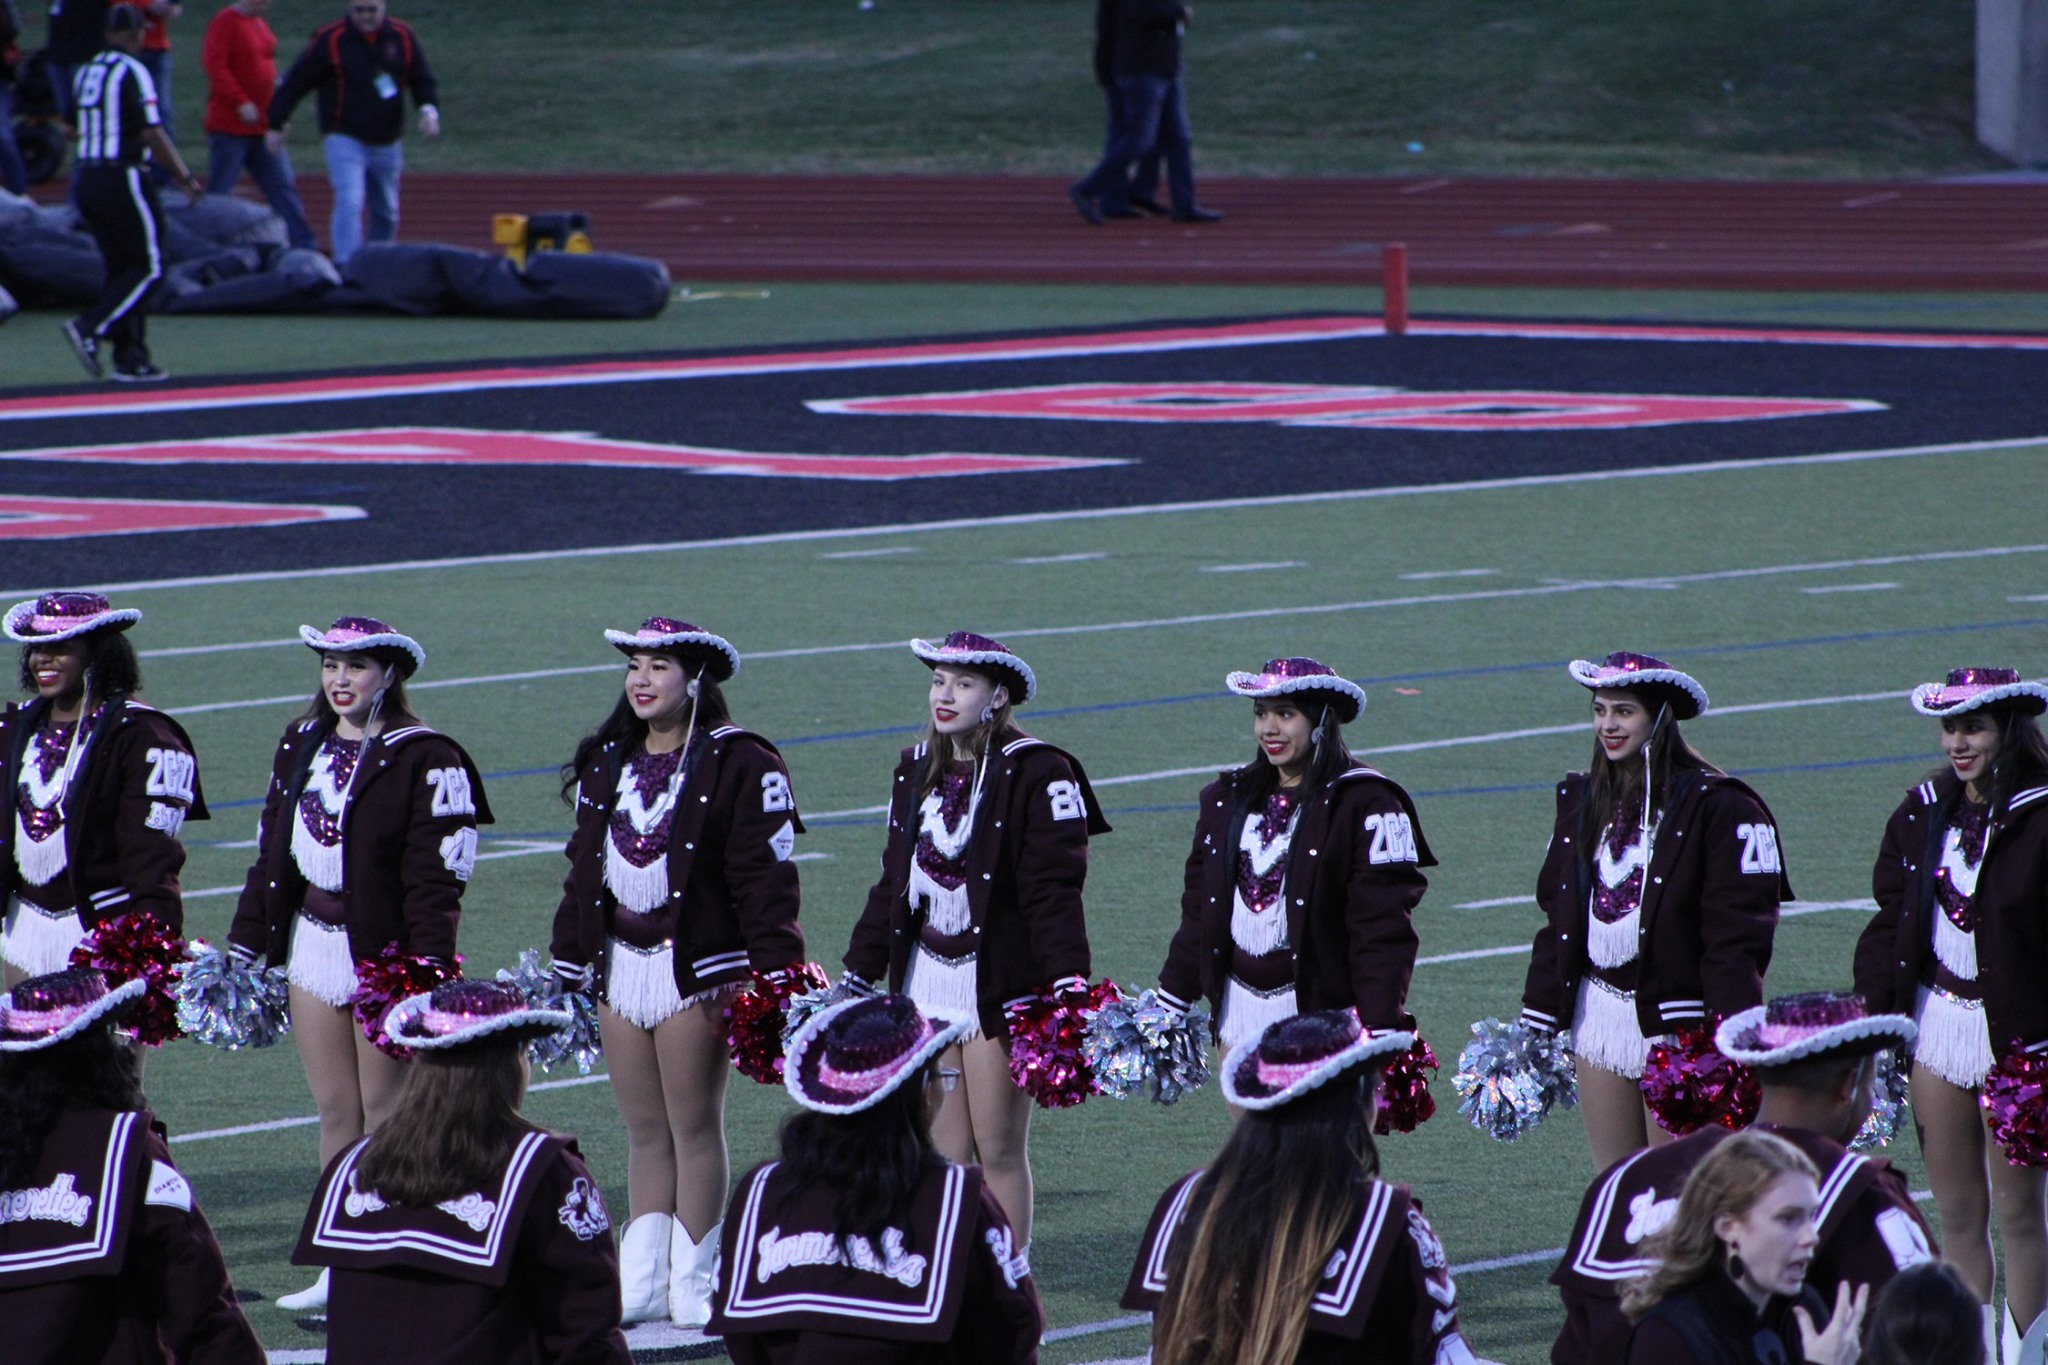 10/11 LHS at Coppell